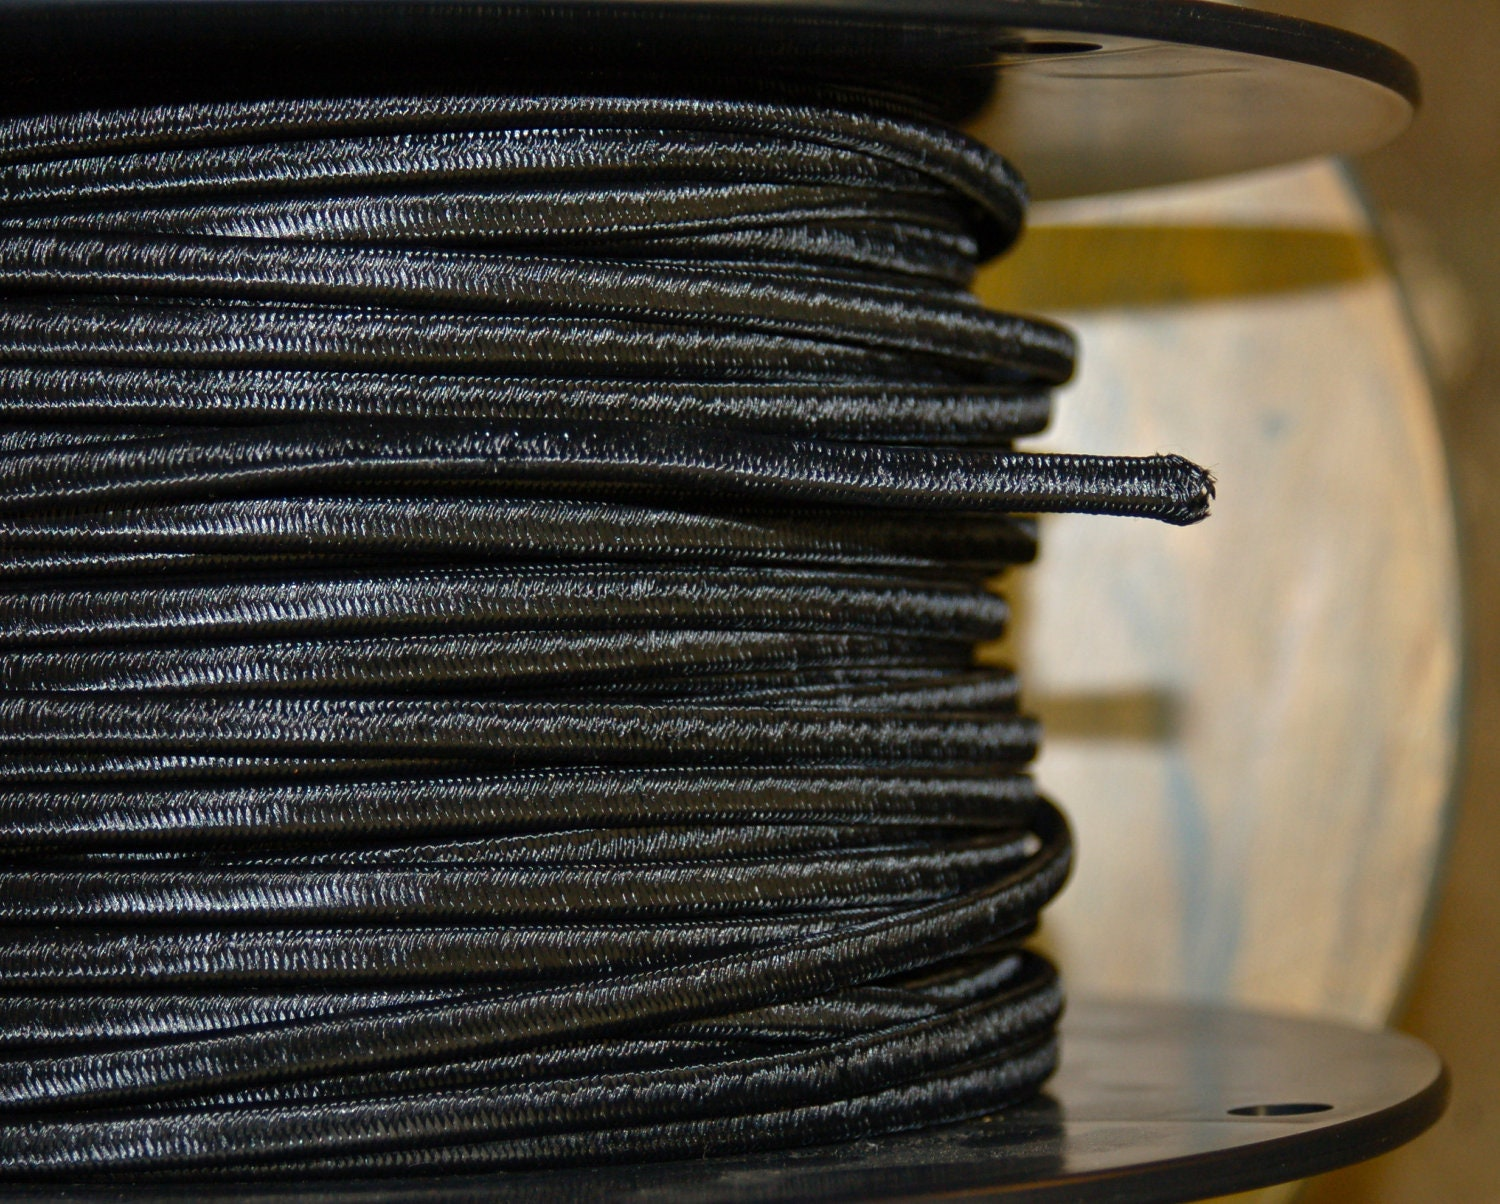 6 Feet: Black Rayon 2-Wire Cloth Covered Cord, Vintage Style Cloth ...